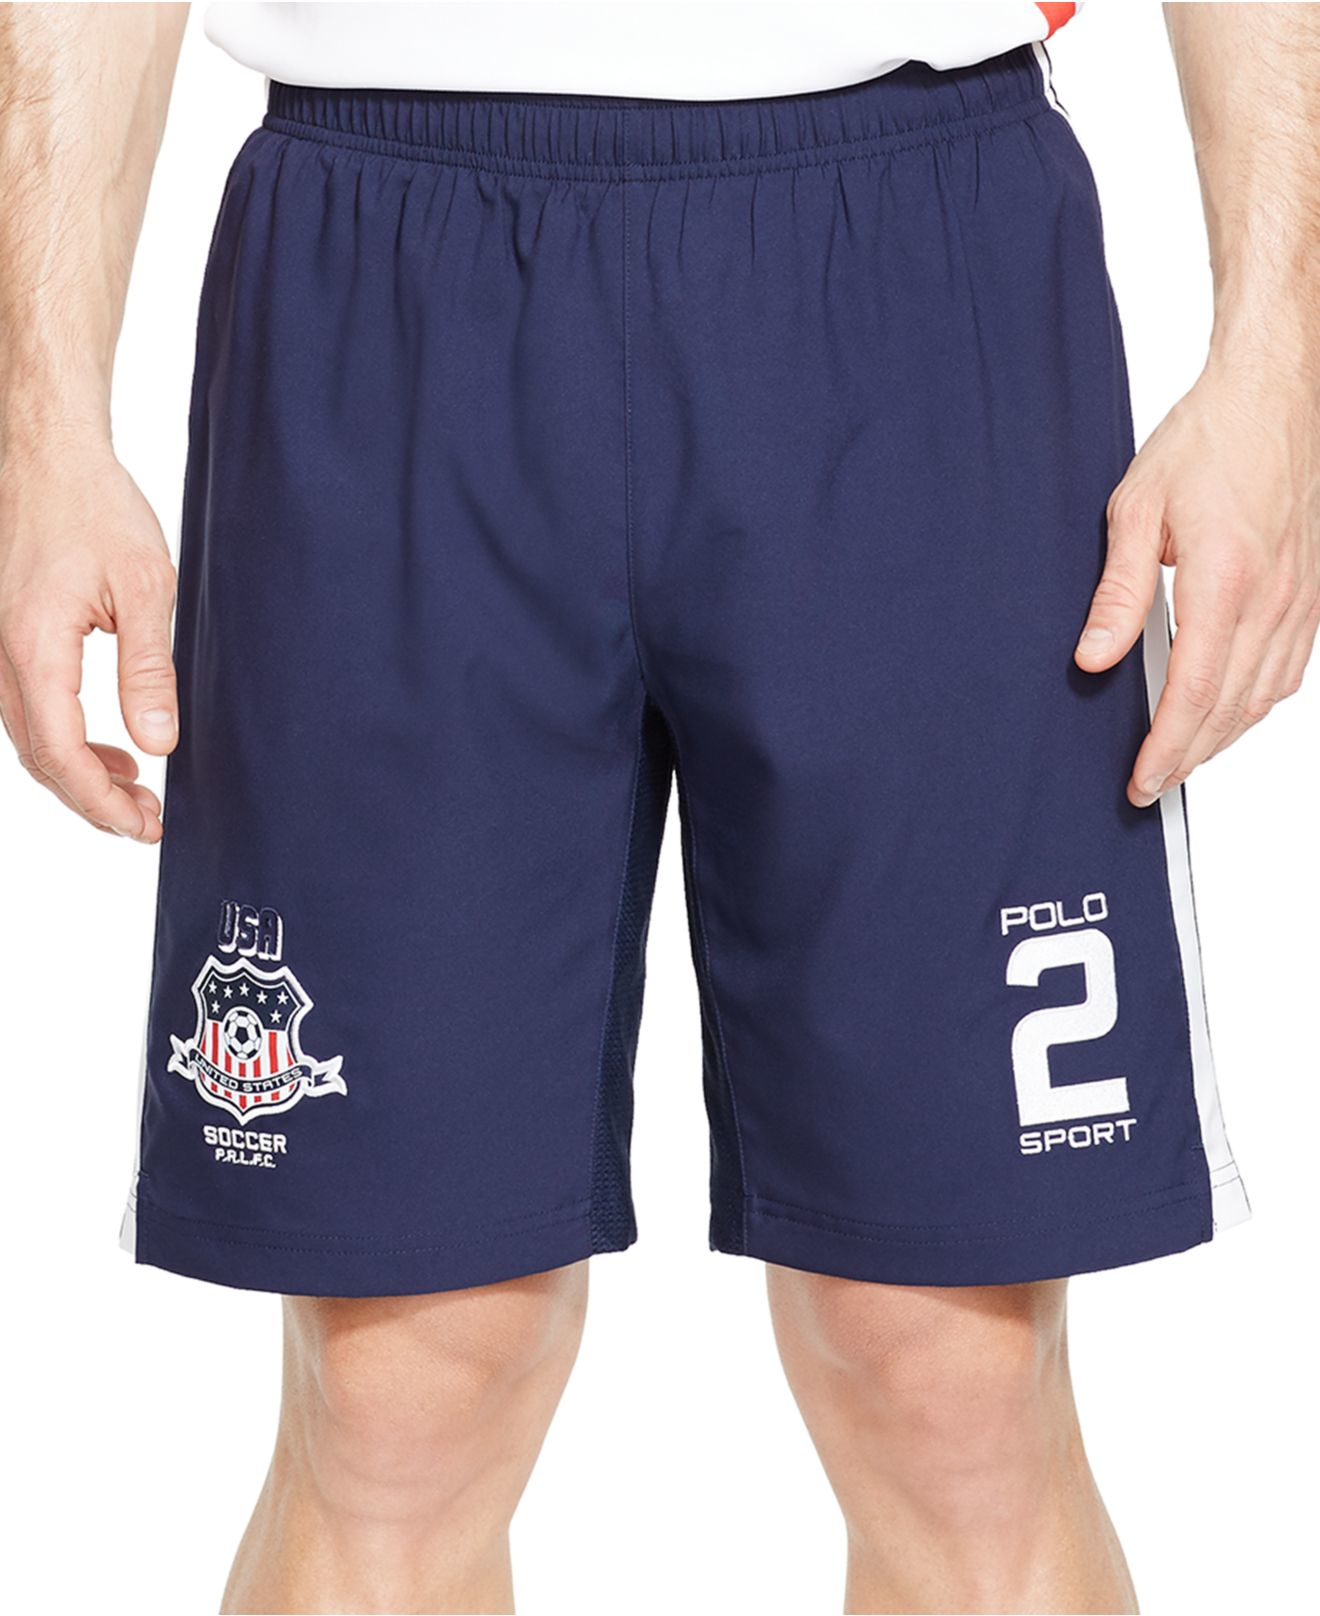 polo ralph lauren polo sport usa soccer compression shorts. Black Bedroom Furniture Sets. Home Design Ideas